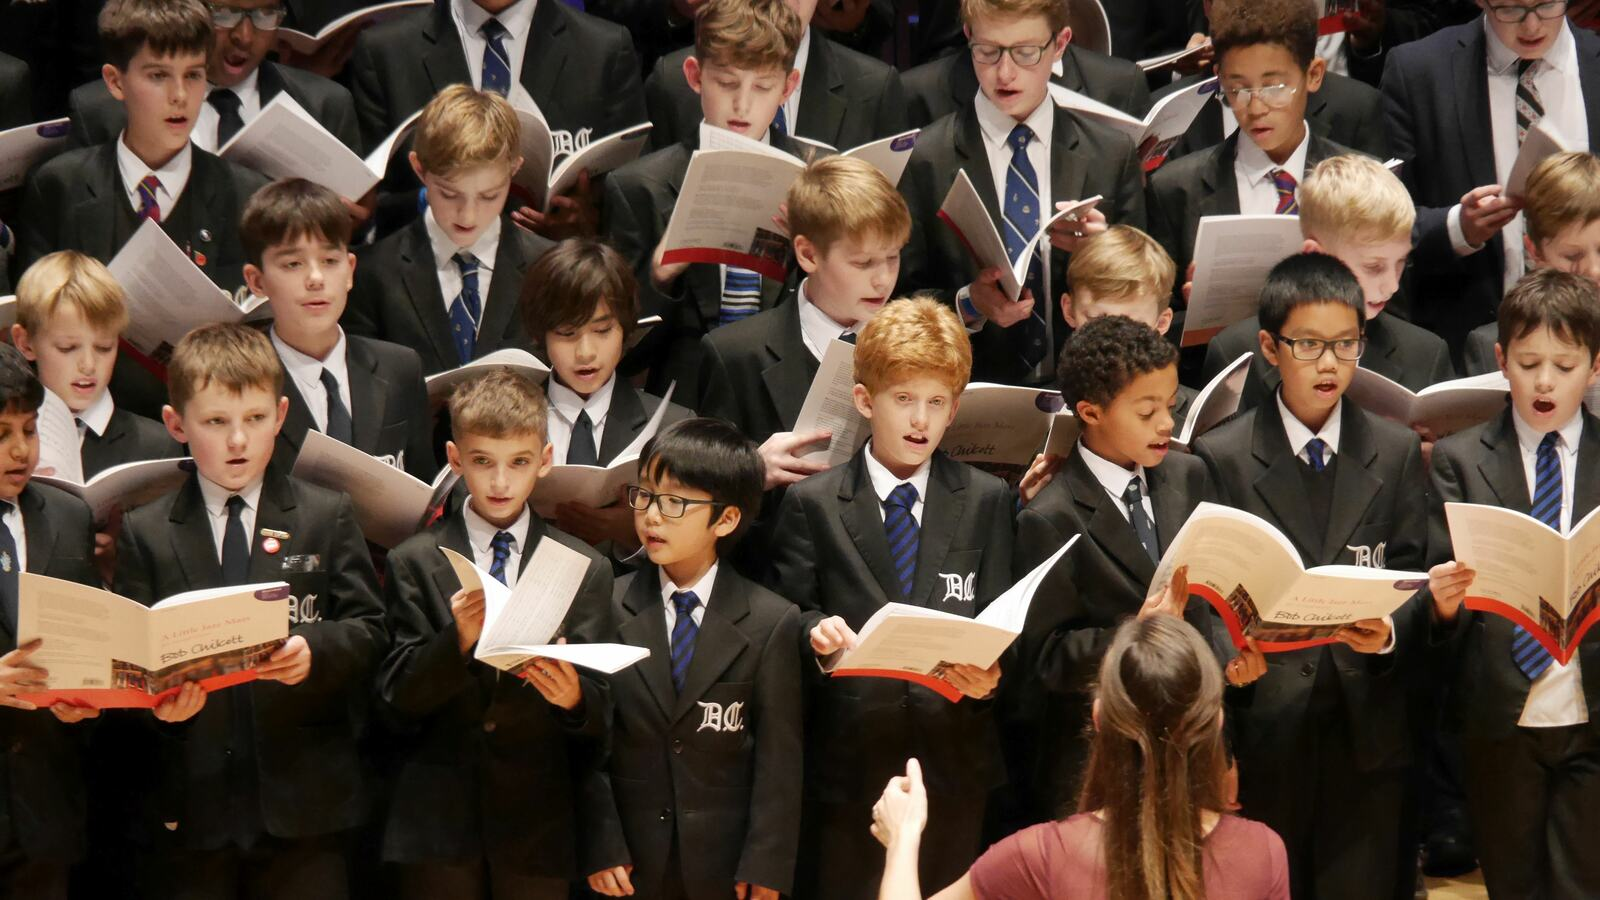 Young choir performing